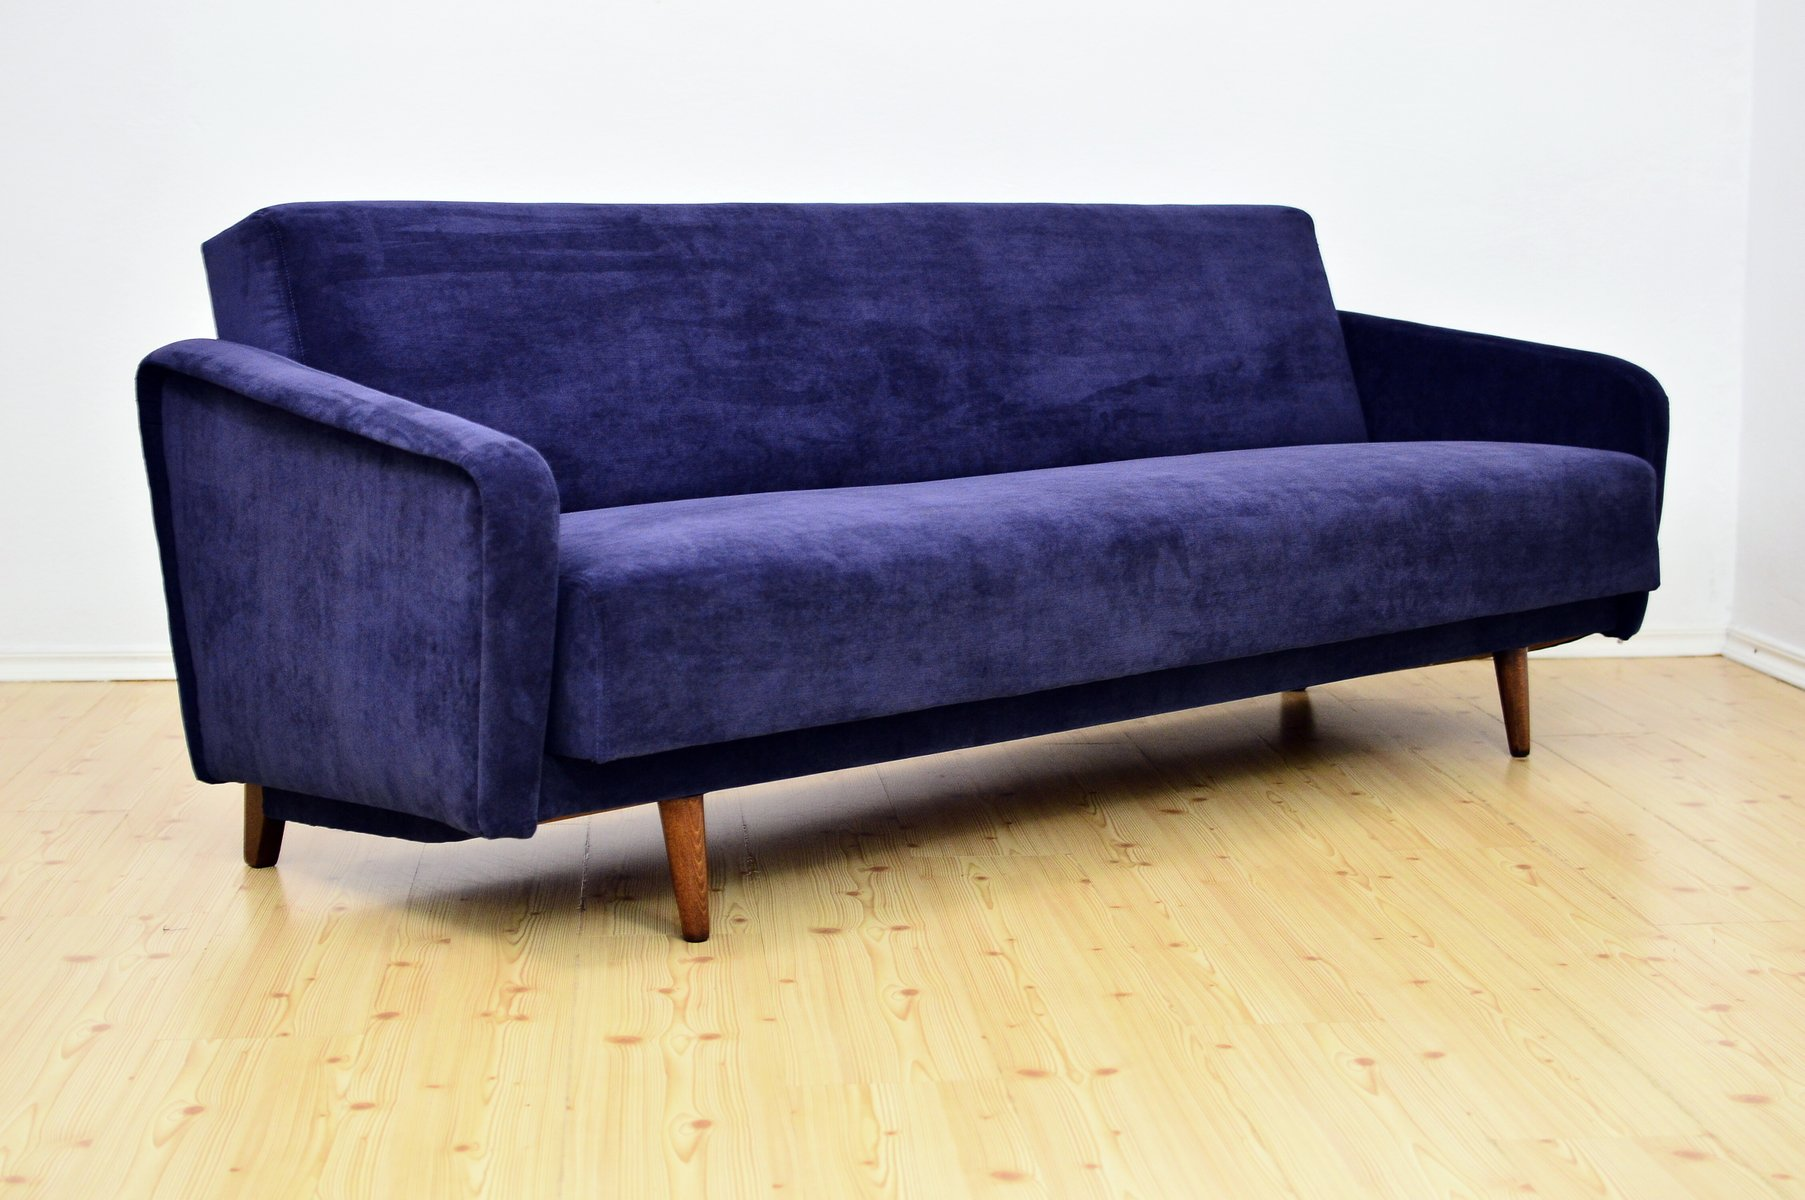 Navy Blue Sofa Bed, 1960s for sale at Pamono